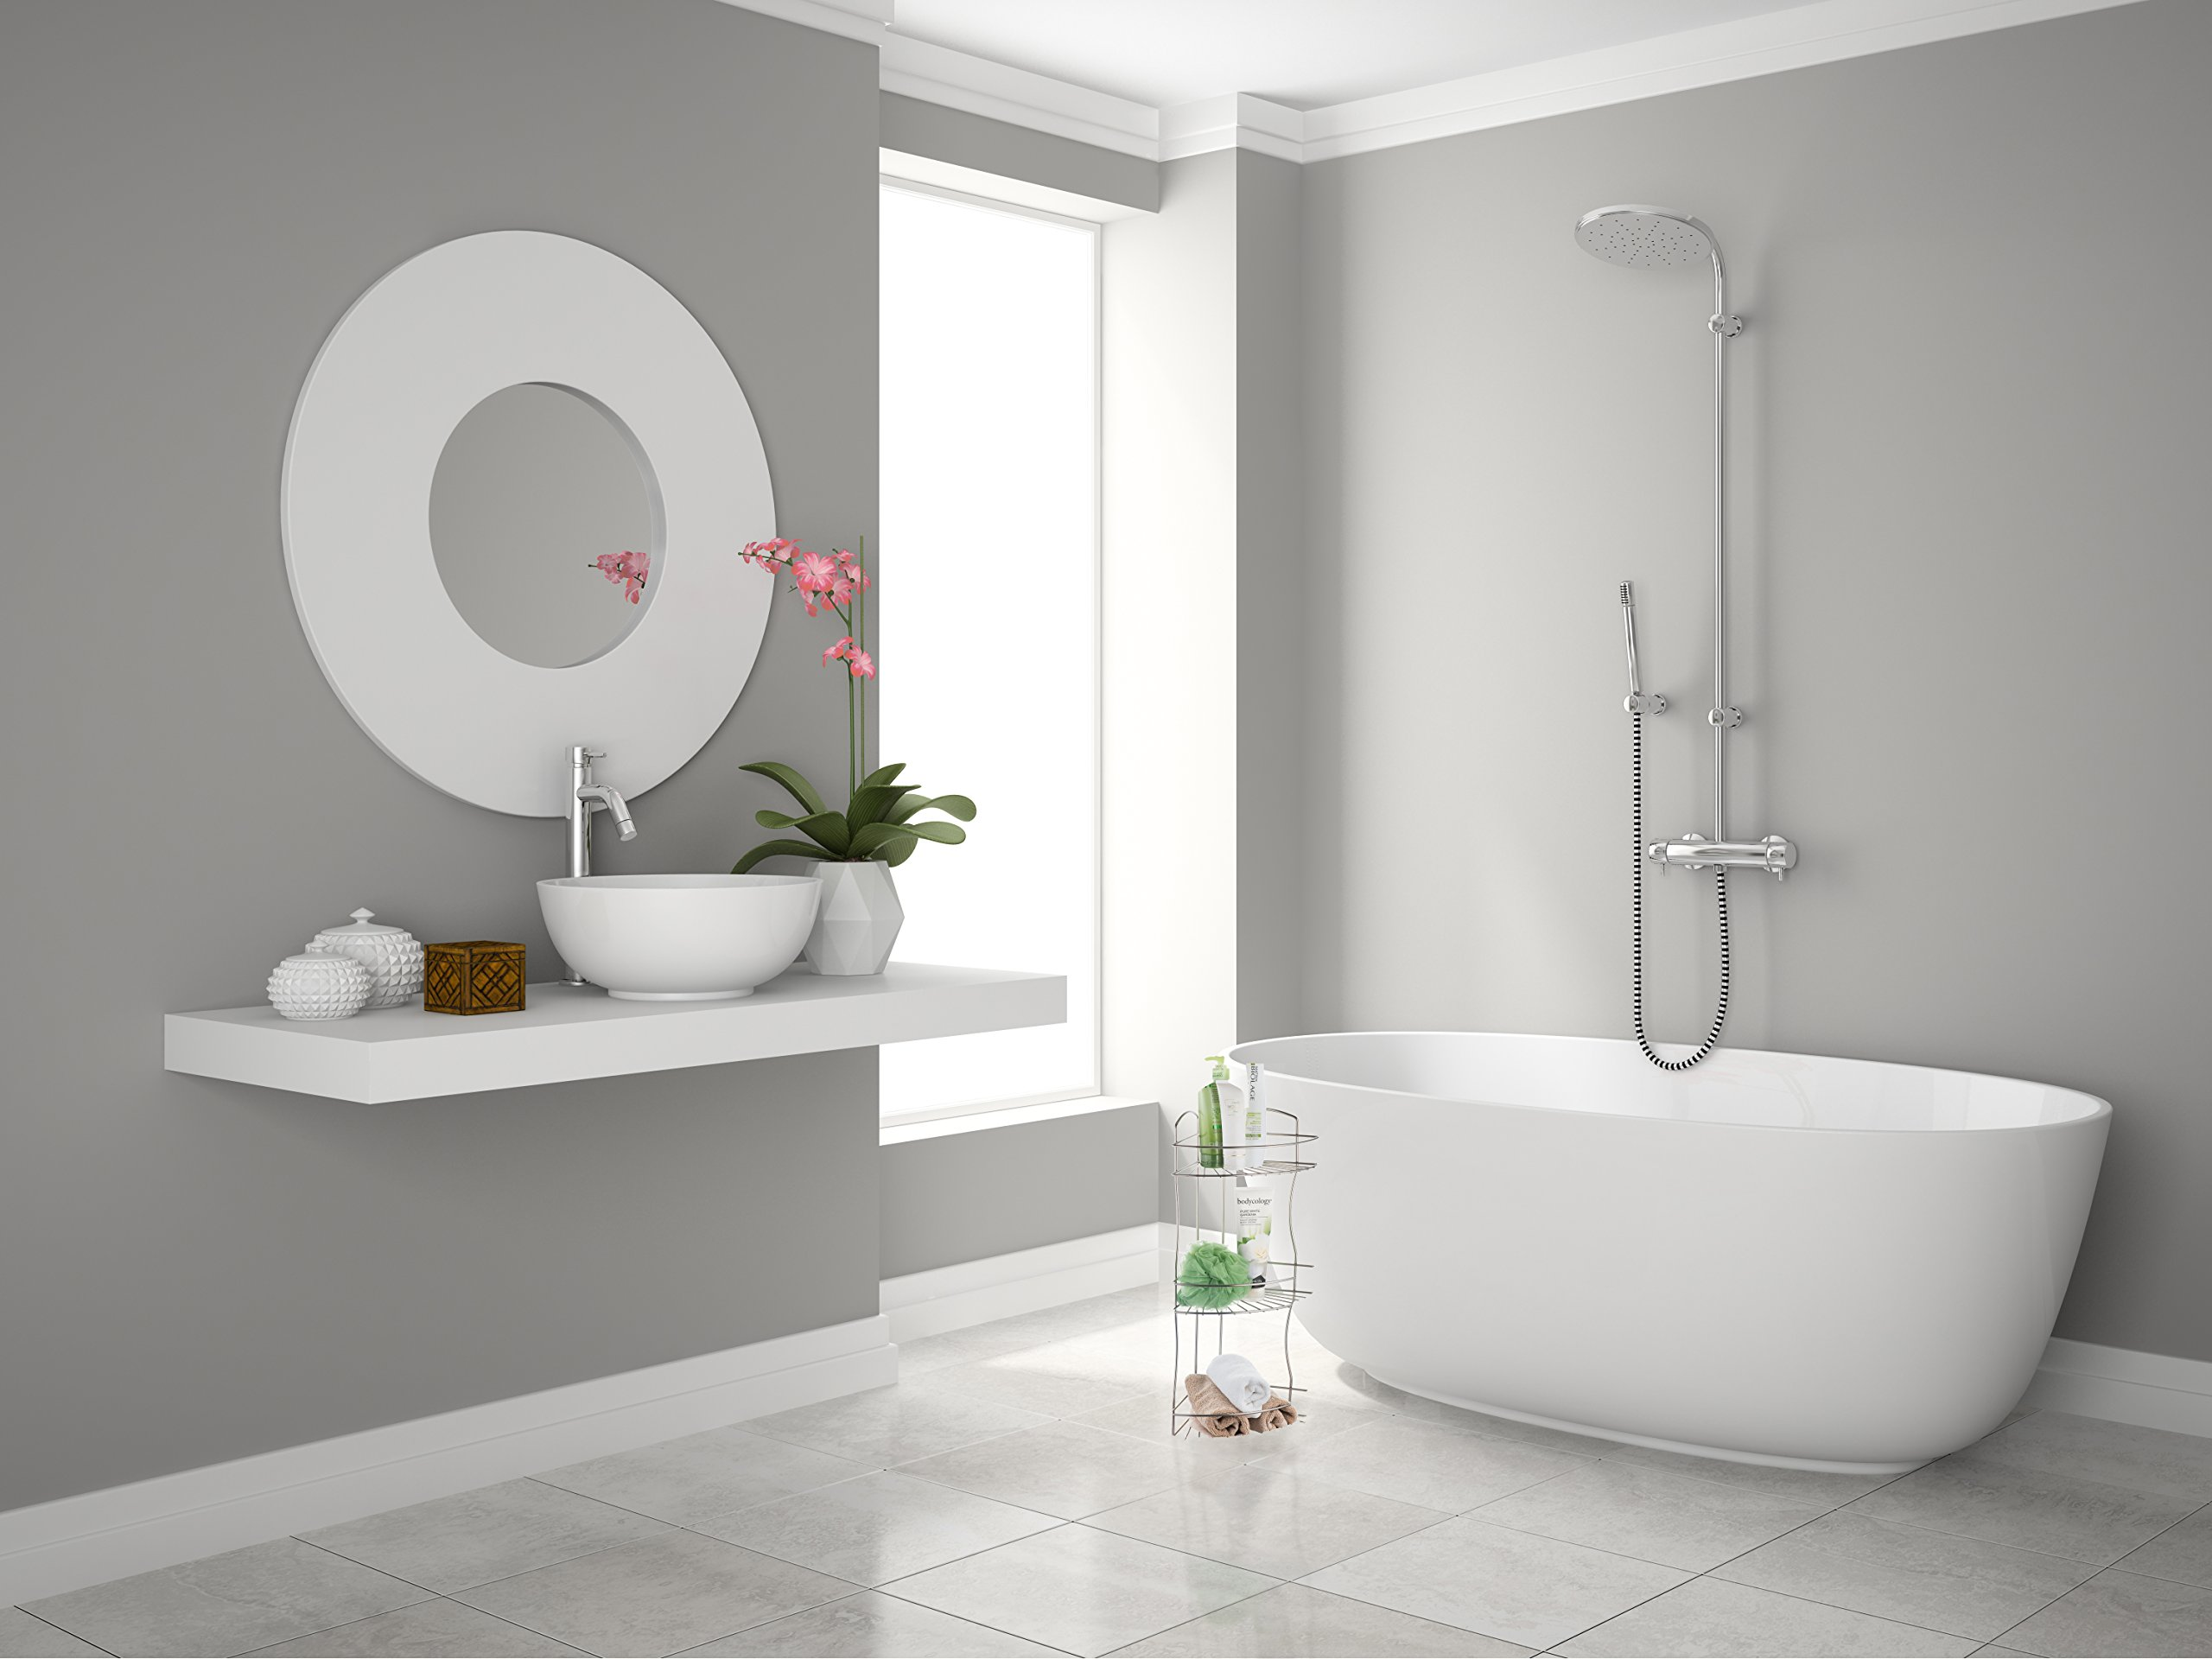 AMG and Enchante Accessories Free Standing Bathroom Spa Tower Floor Caddy, FC232-A SNI, Satin Nickel by AMG (Image #3)